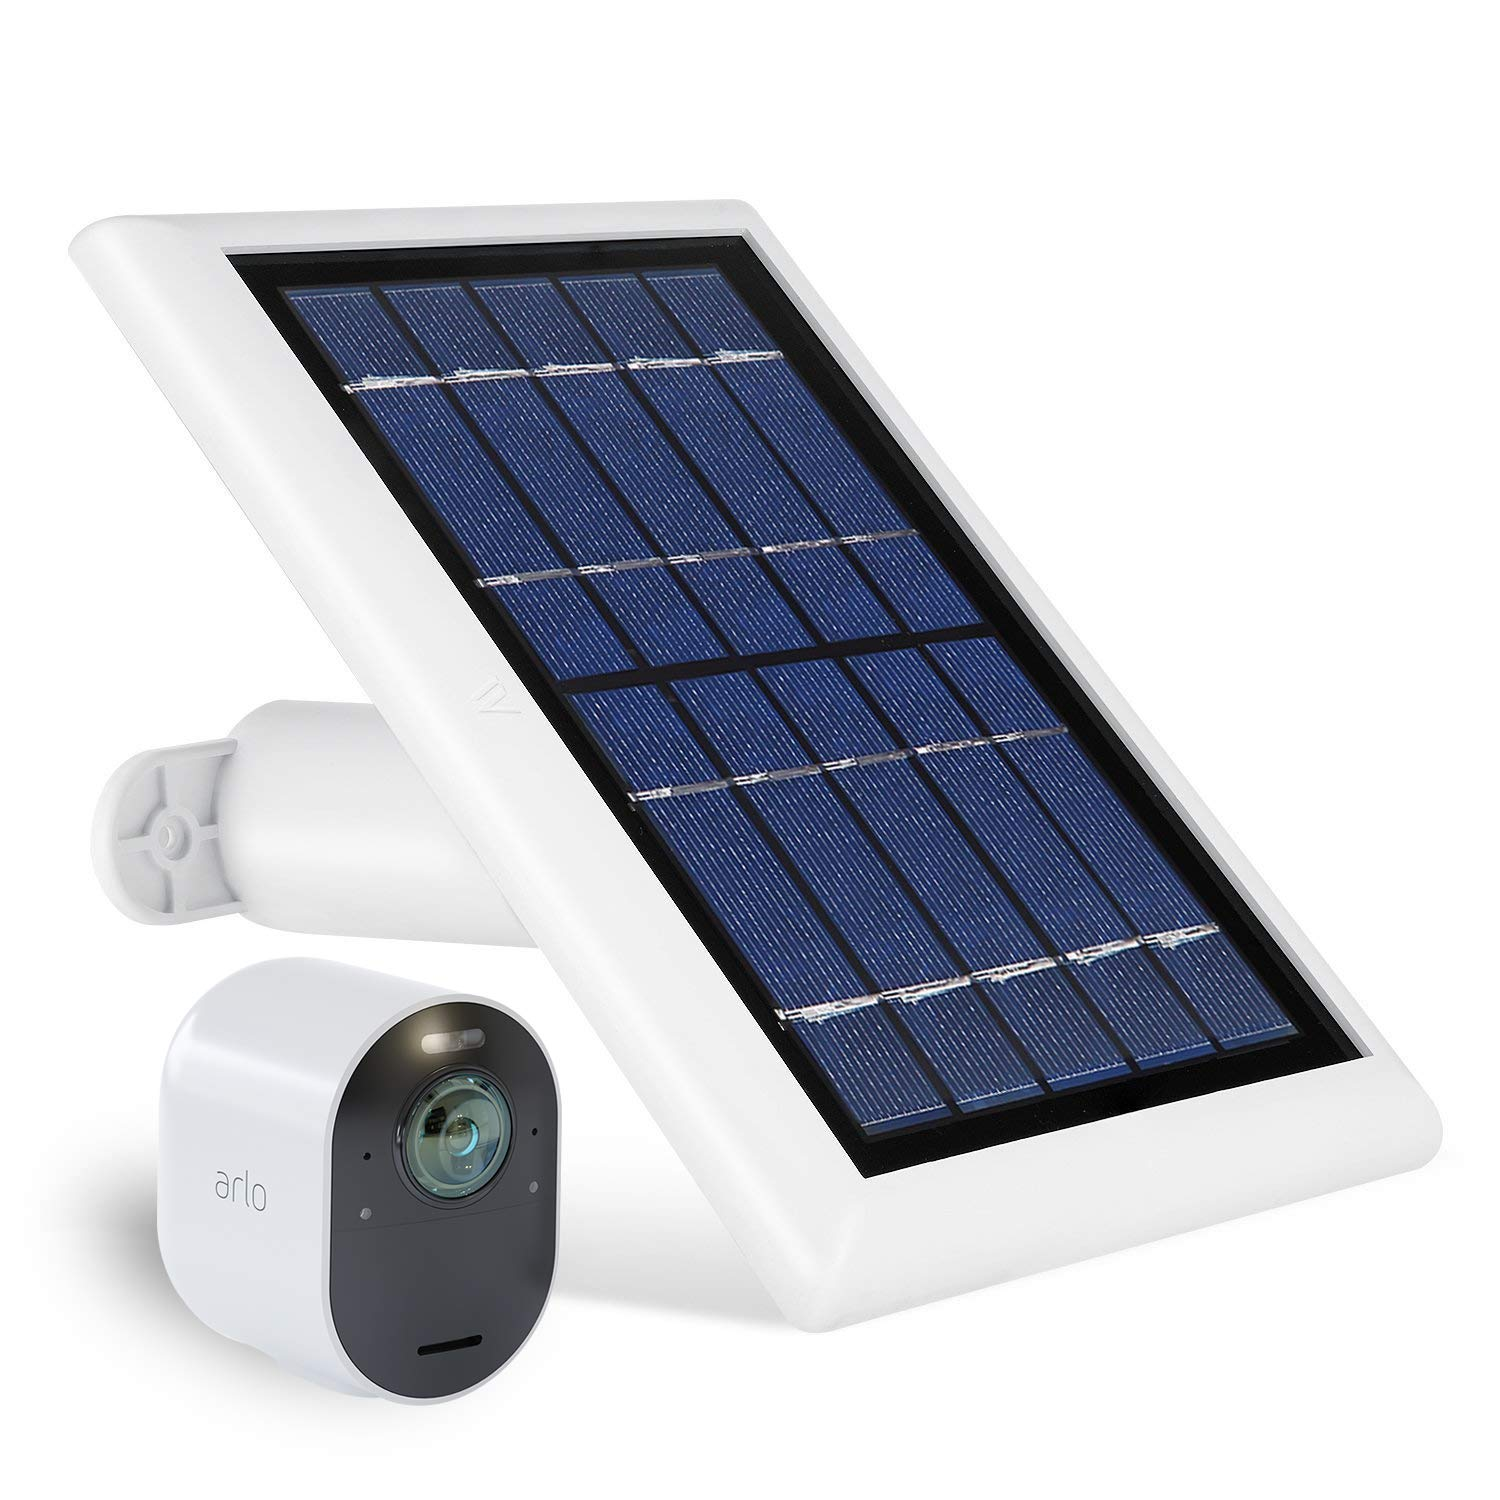 Wasserstein Solar Panel with 13.1ft/4m Cable Compatible with Arlo Ultra - Power Your Arlo Surveillance Camera continuously (White) (Not Compatible with Arlo Pro/Pro2) by Wasserstein